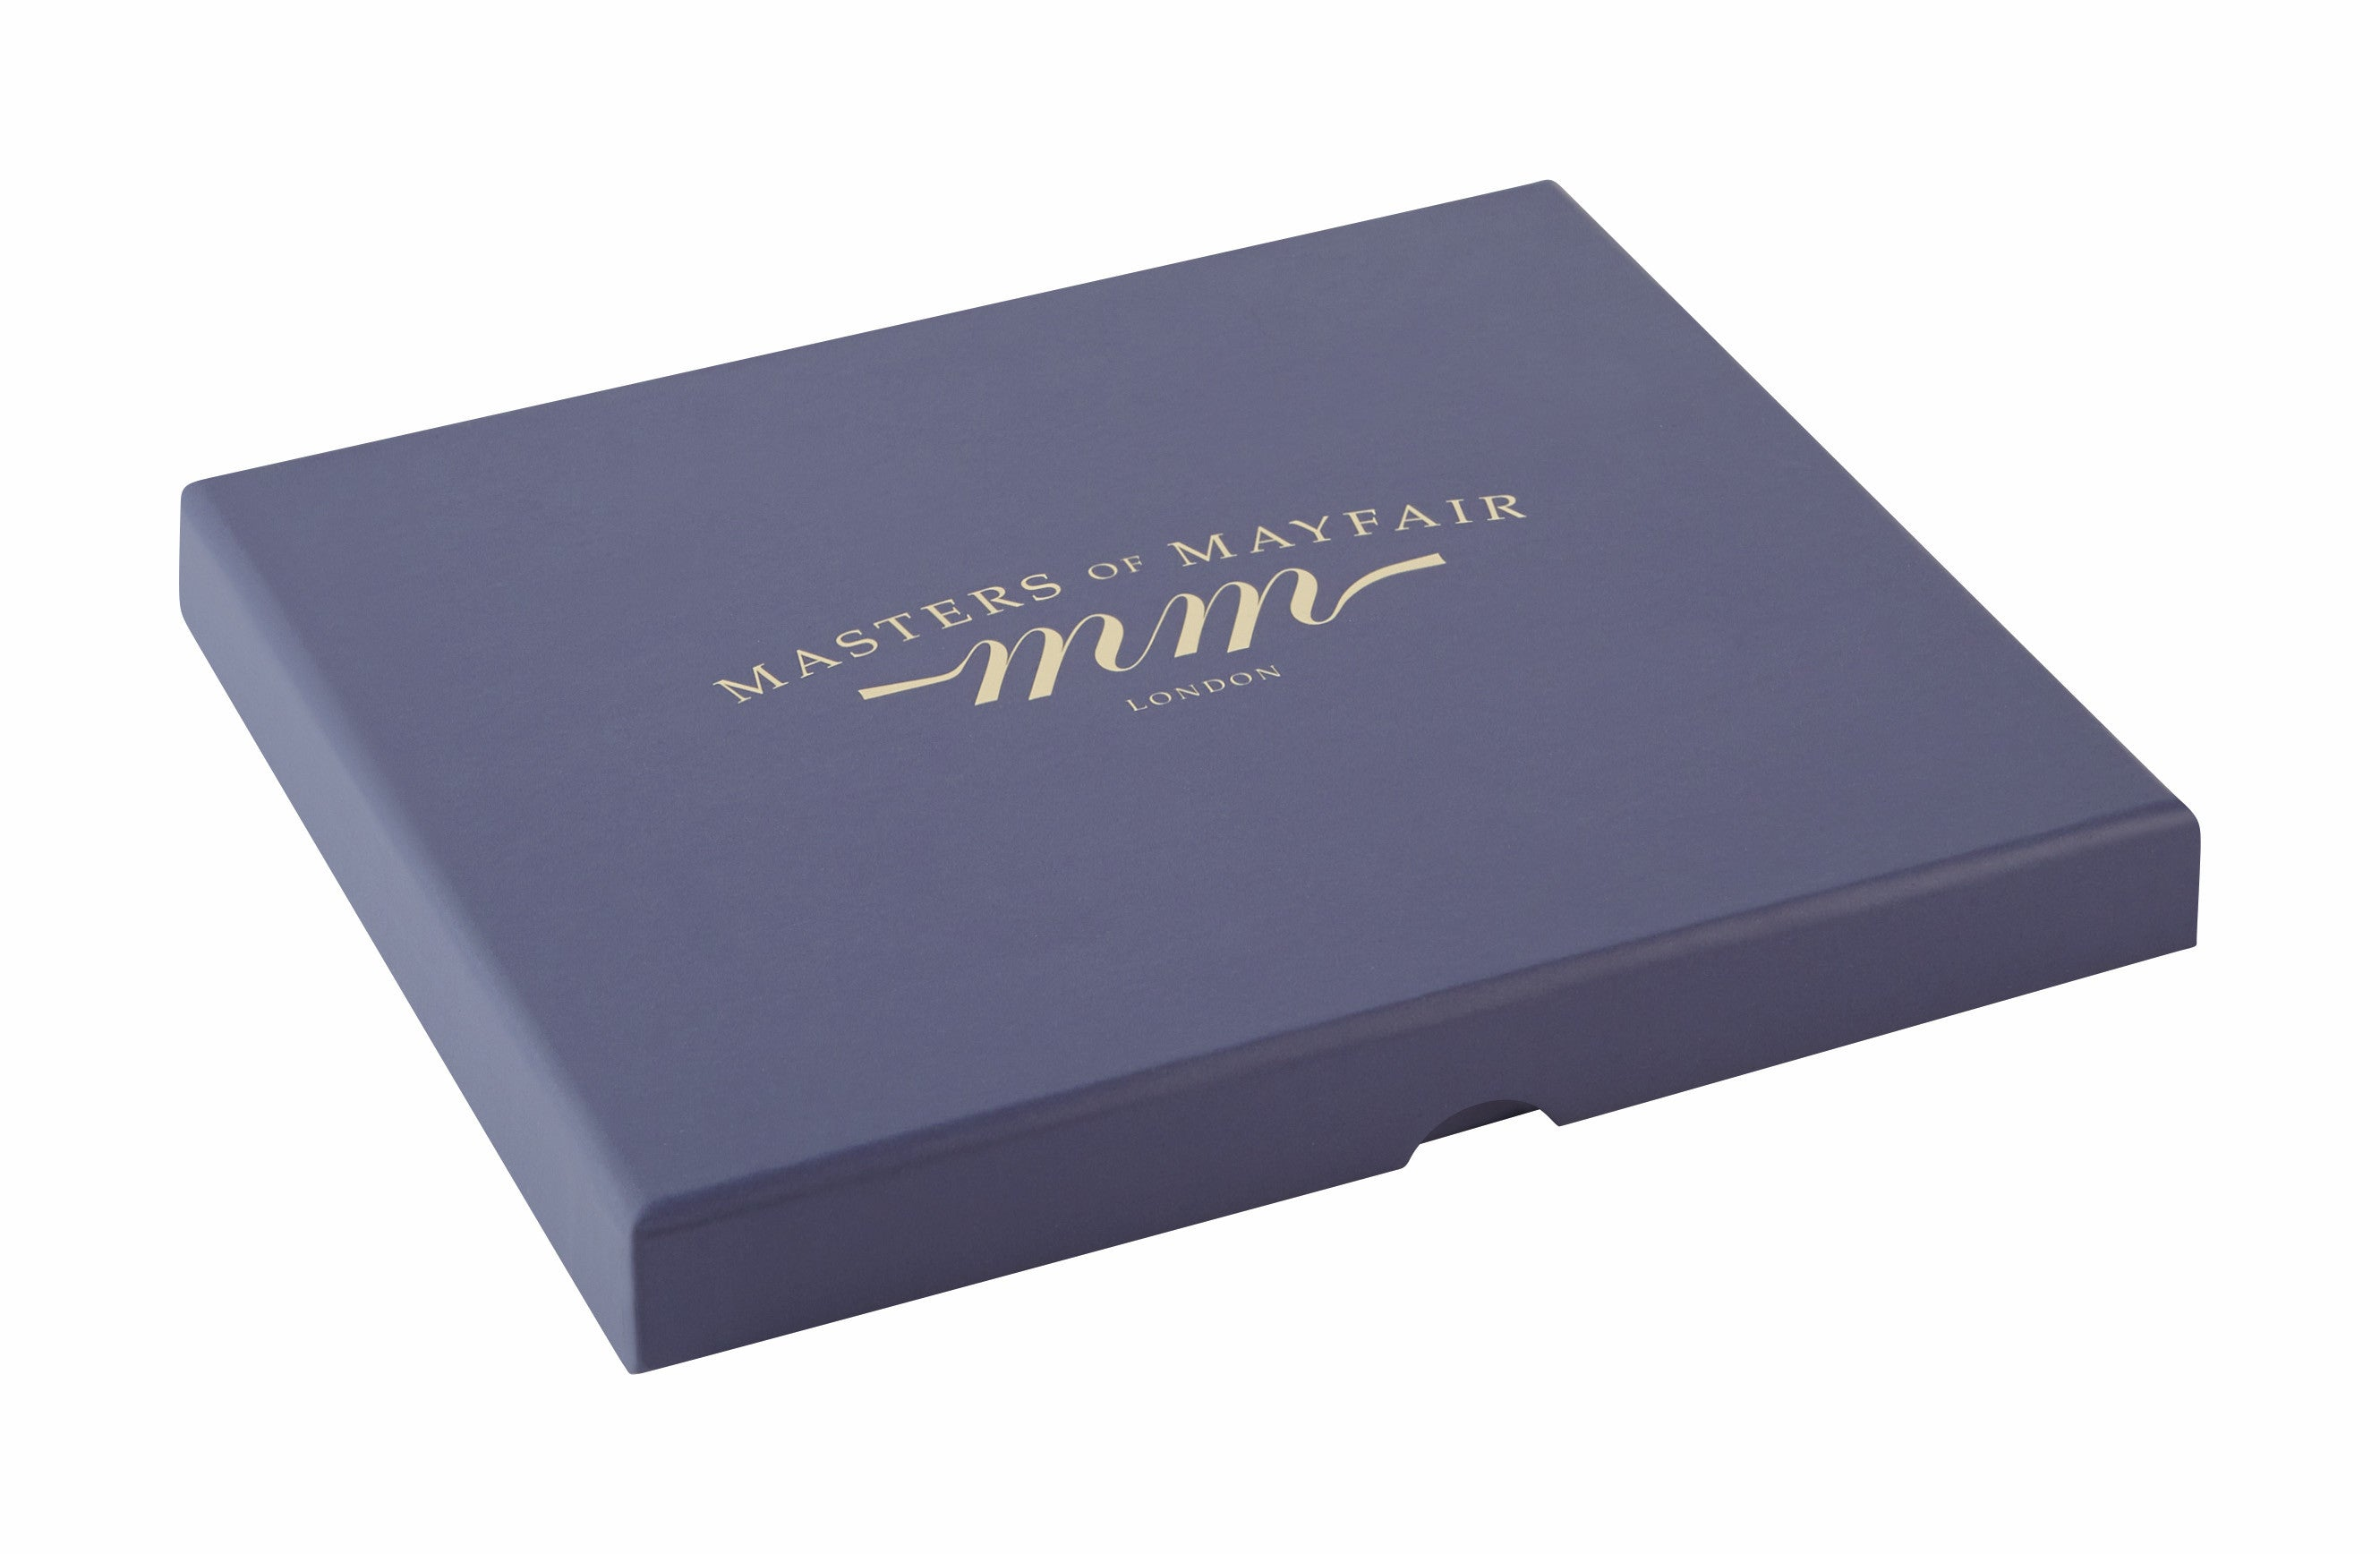 Masters of Mayfair UK Gift Box